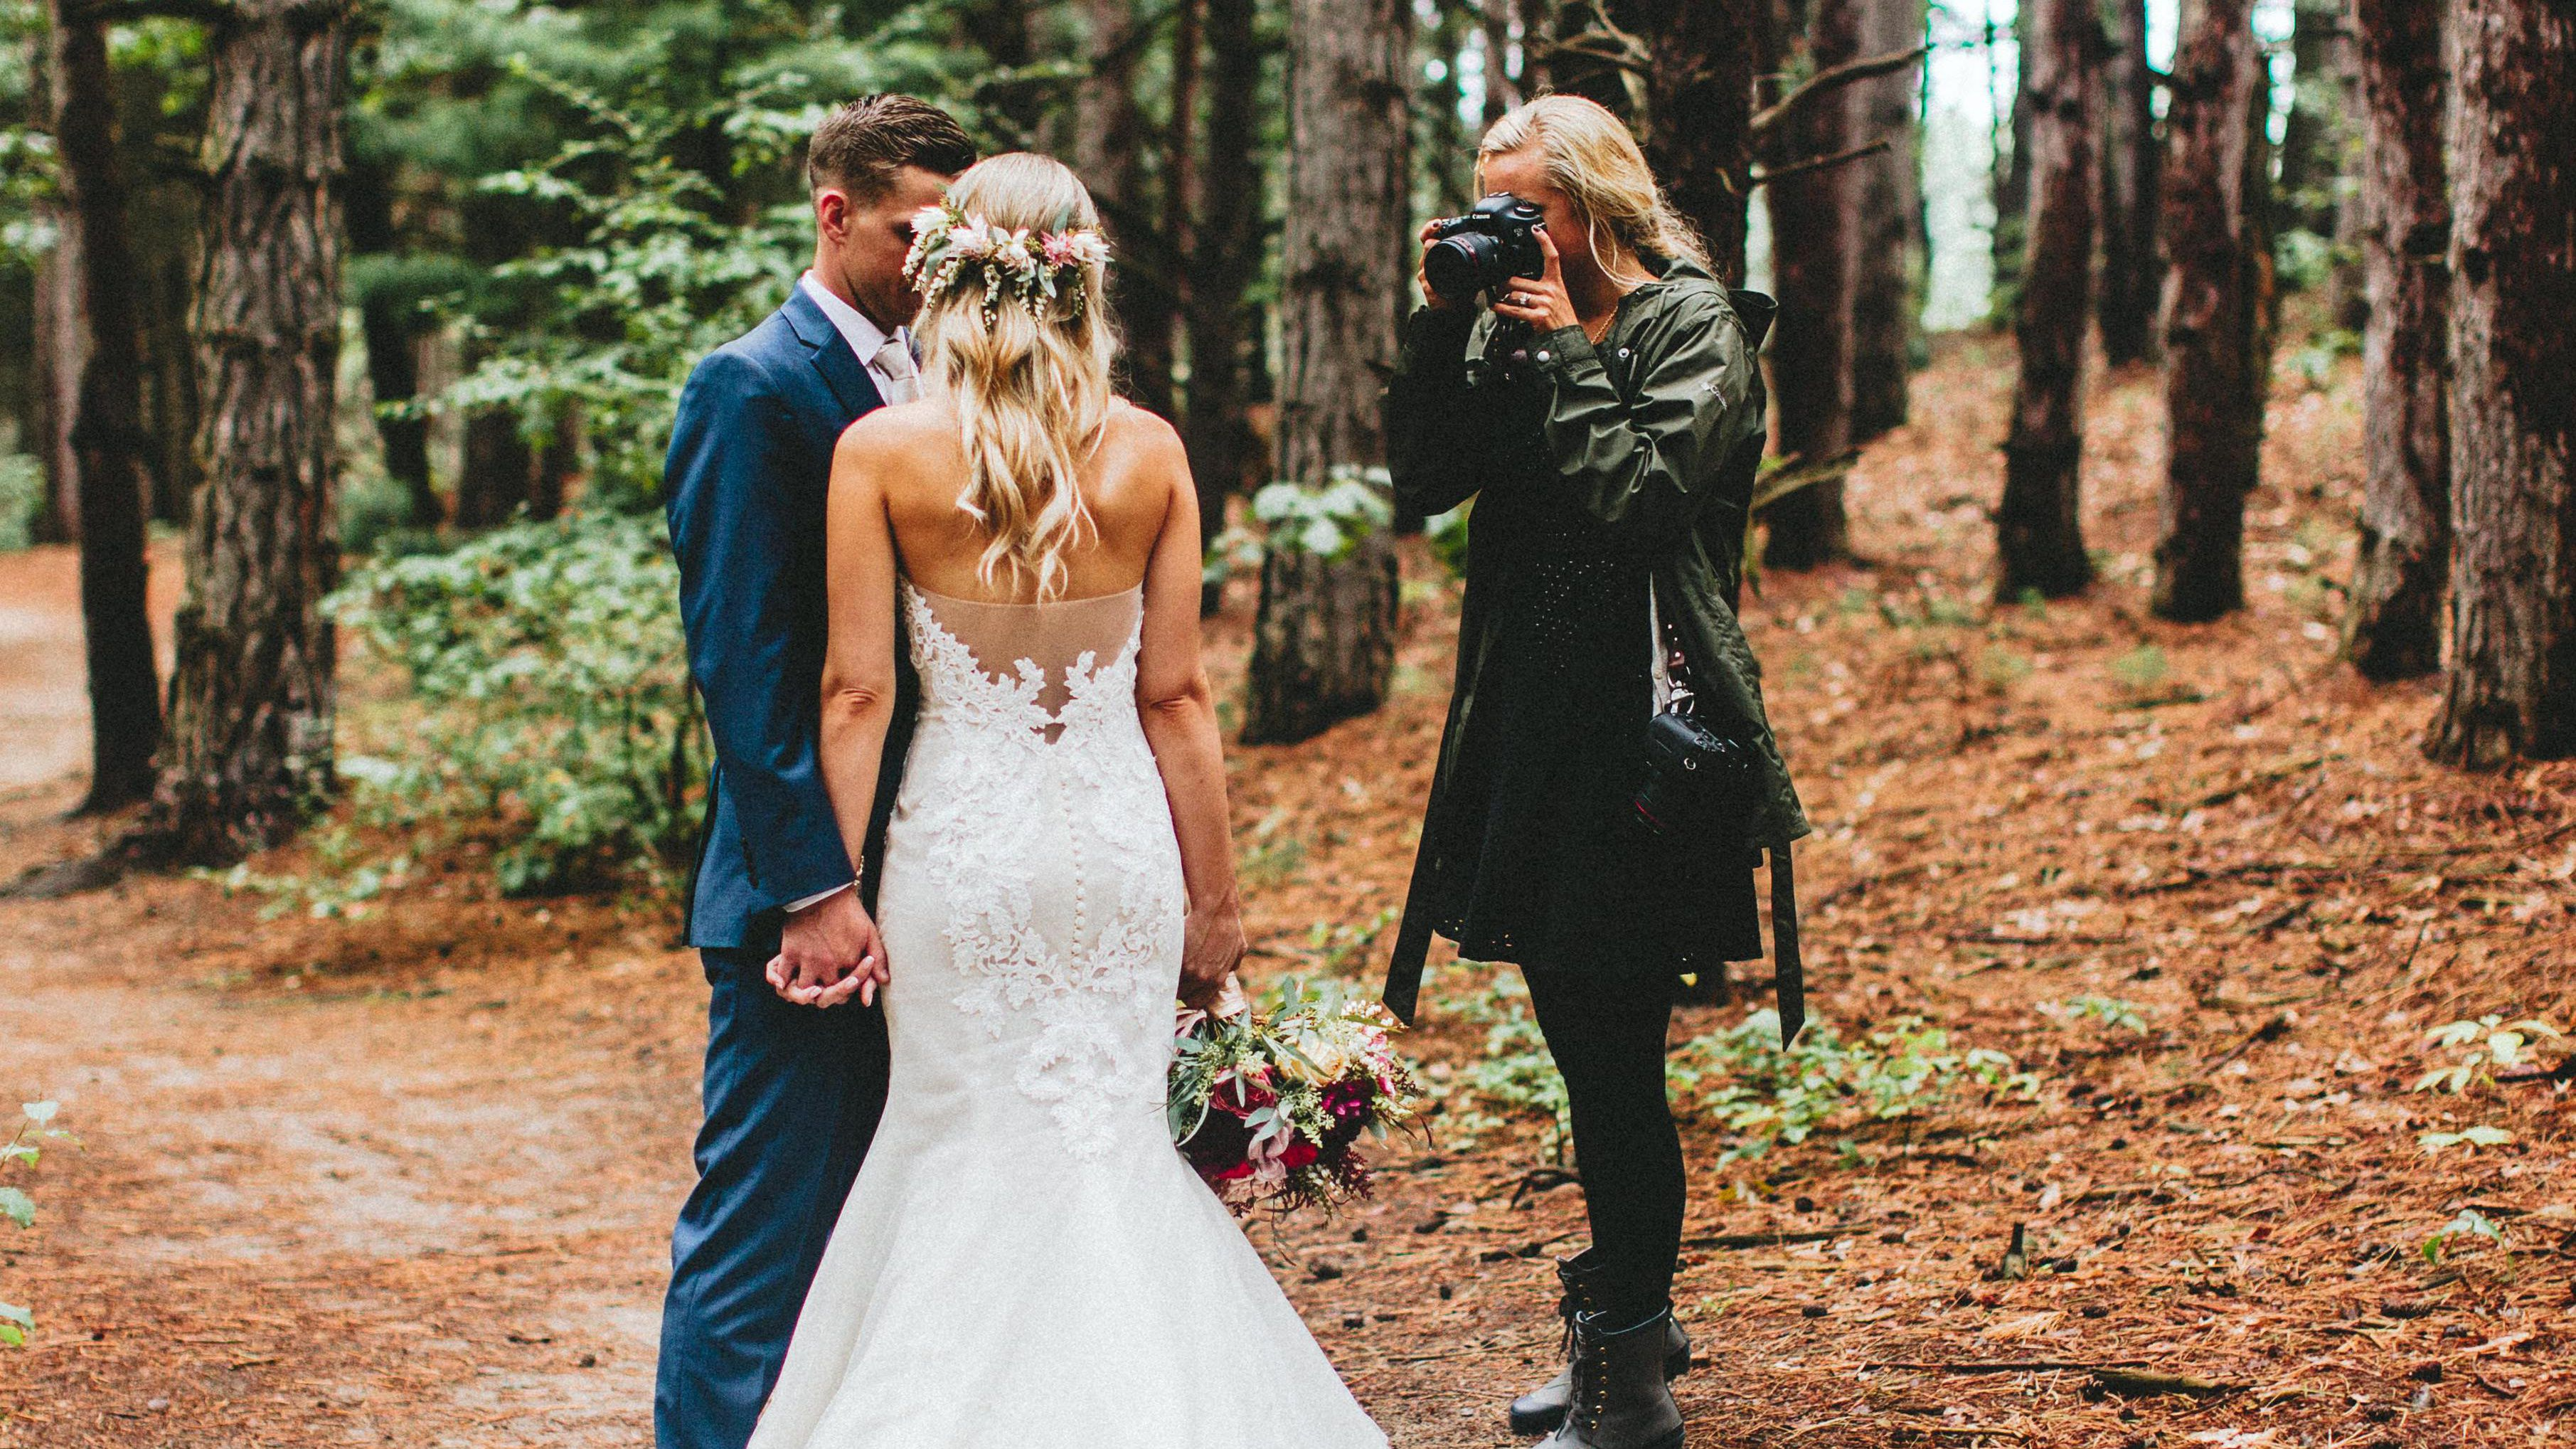 36 Important Questions To Ask Your Wedding Photographer